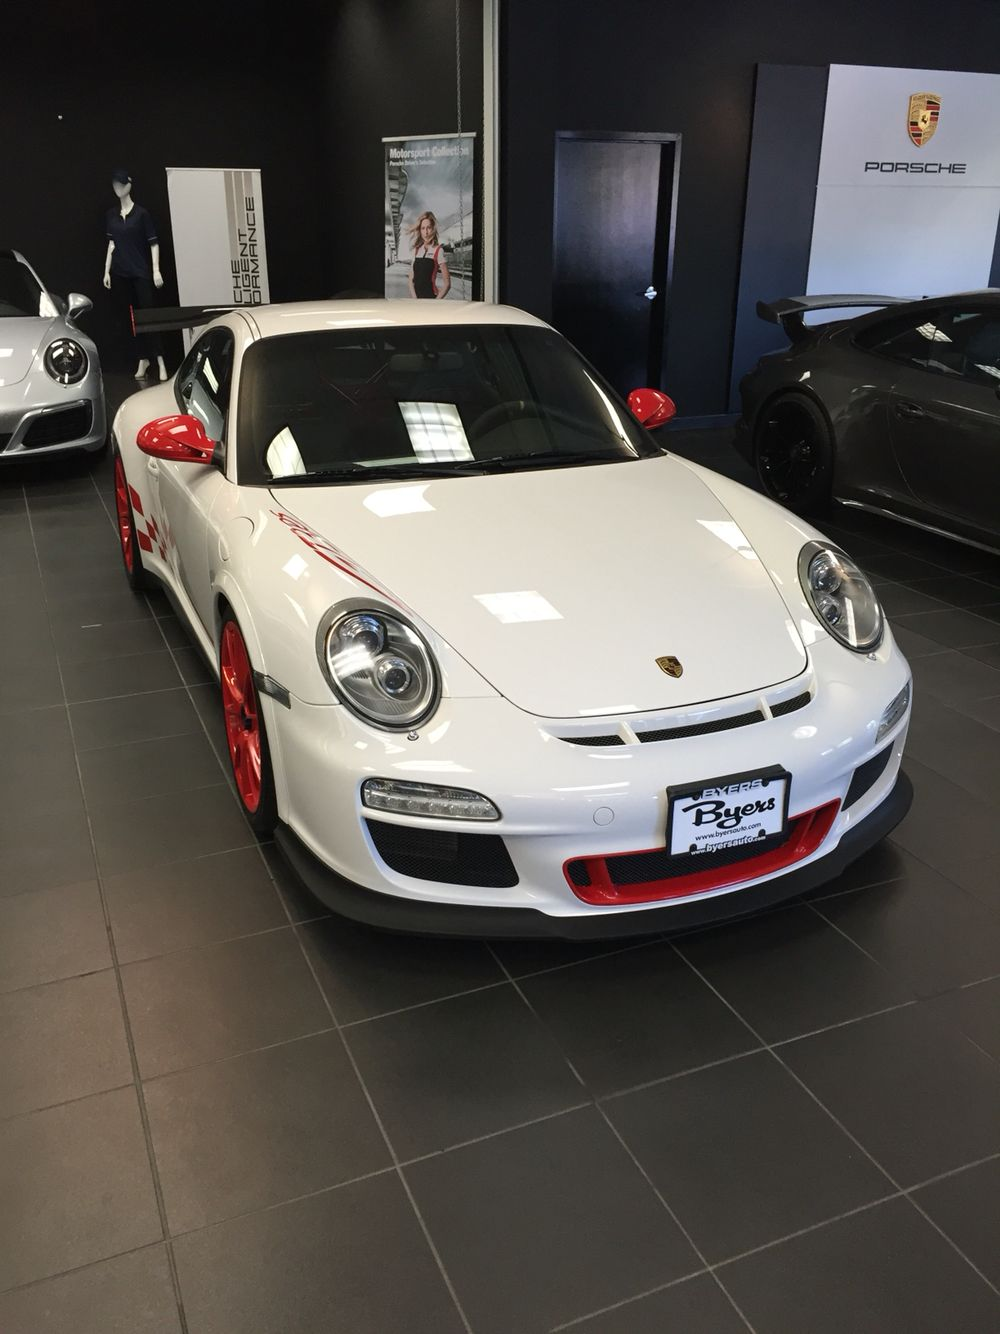 This Beautiful Porsche 997 Gt3 Rs Is Available At Byers In Columbus Ohio Check Us Out Online Byersporsche